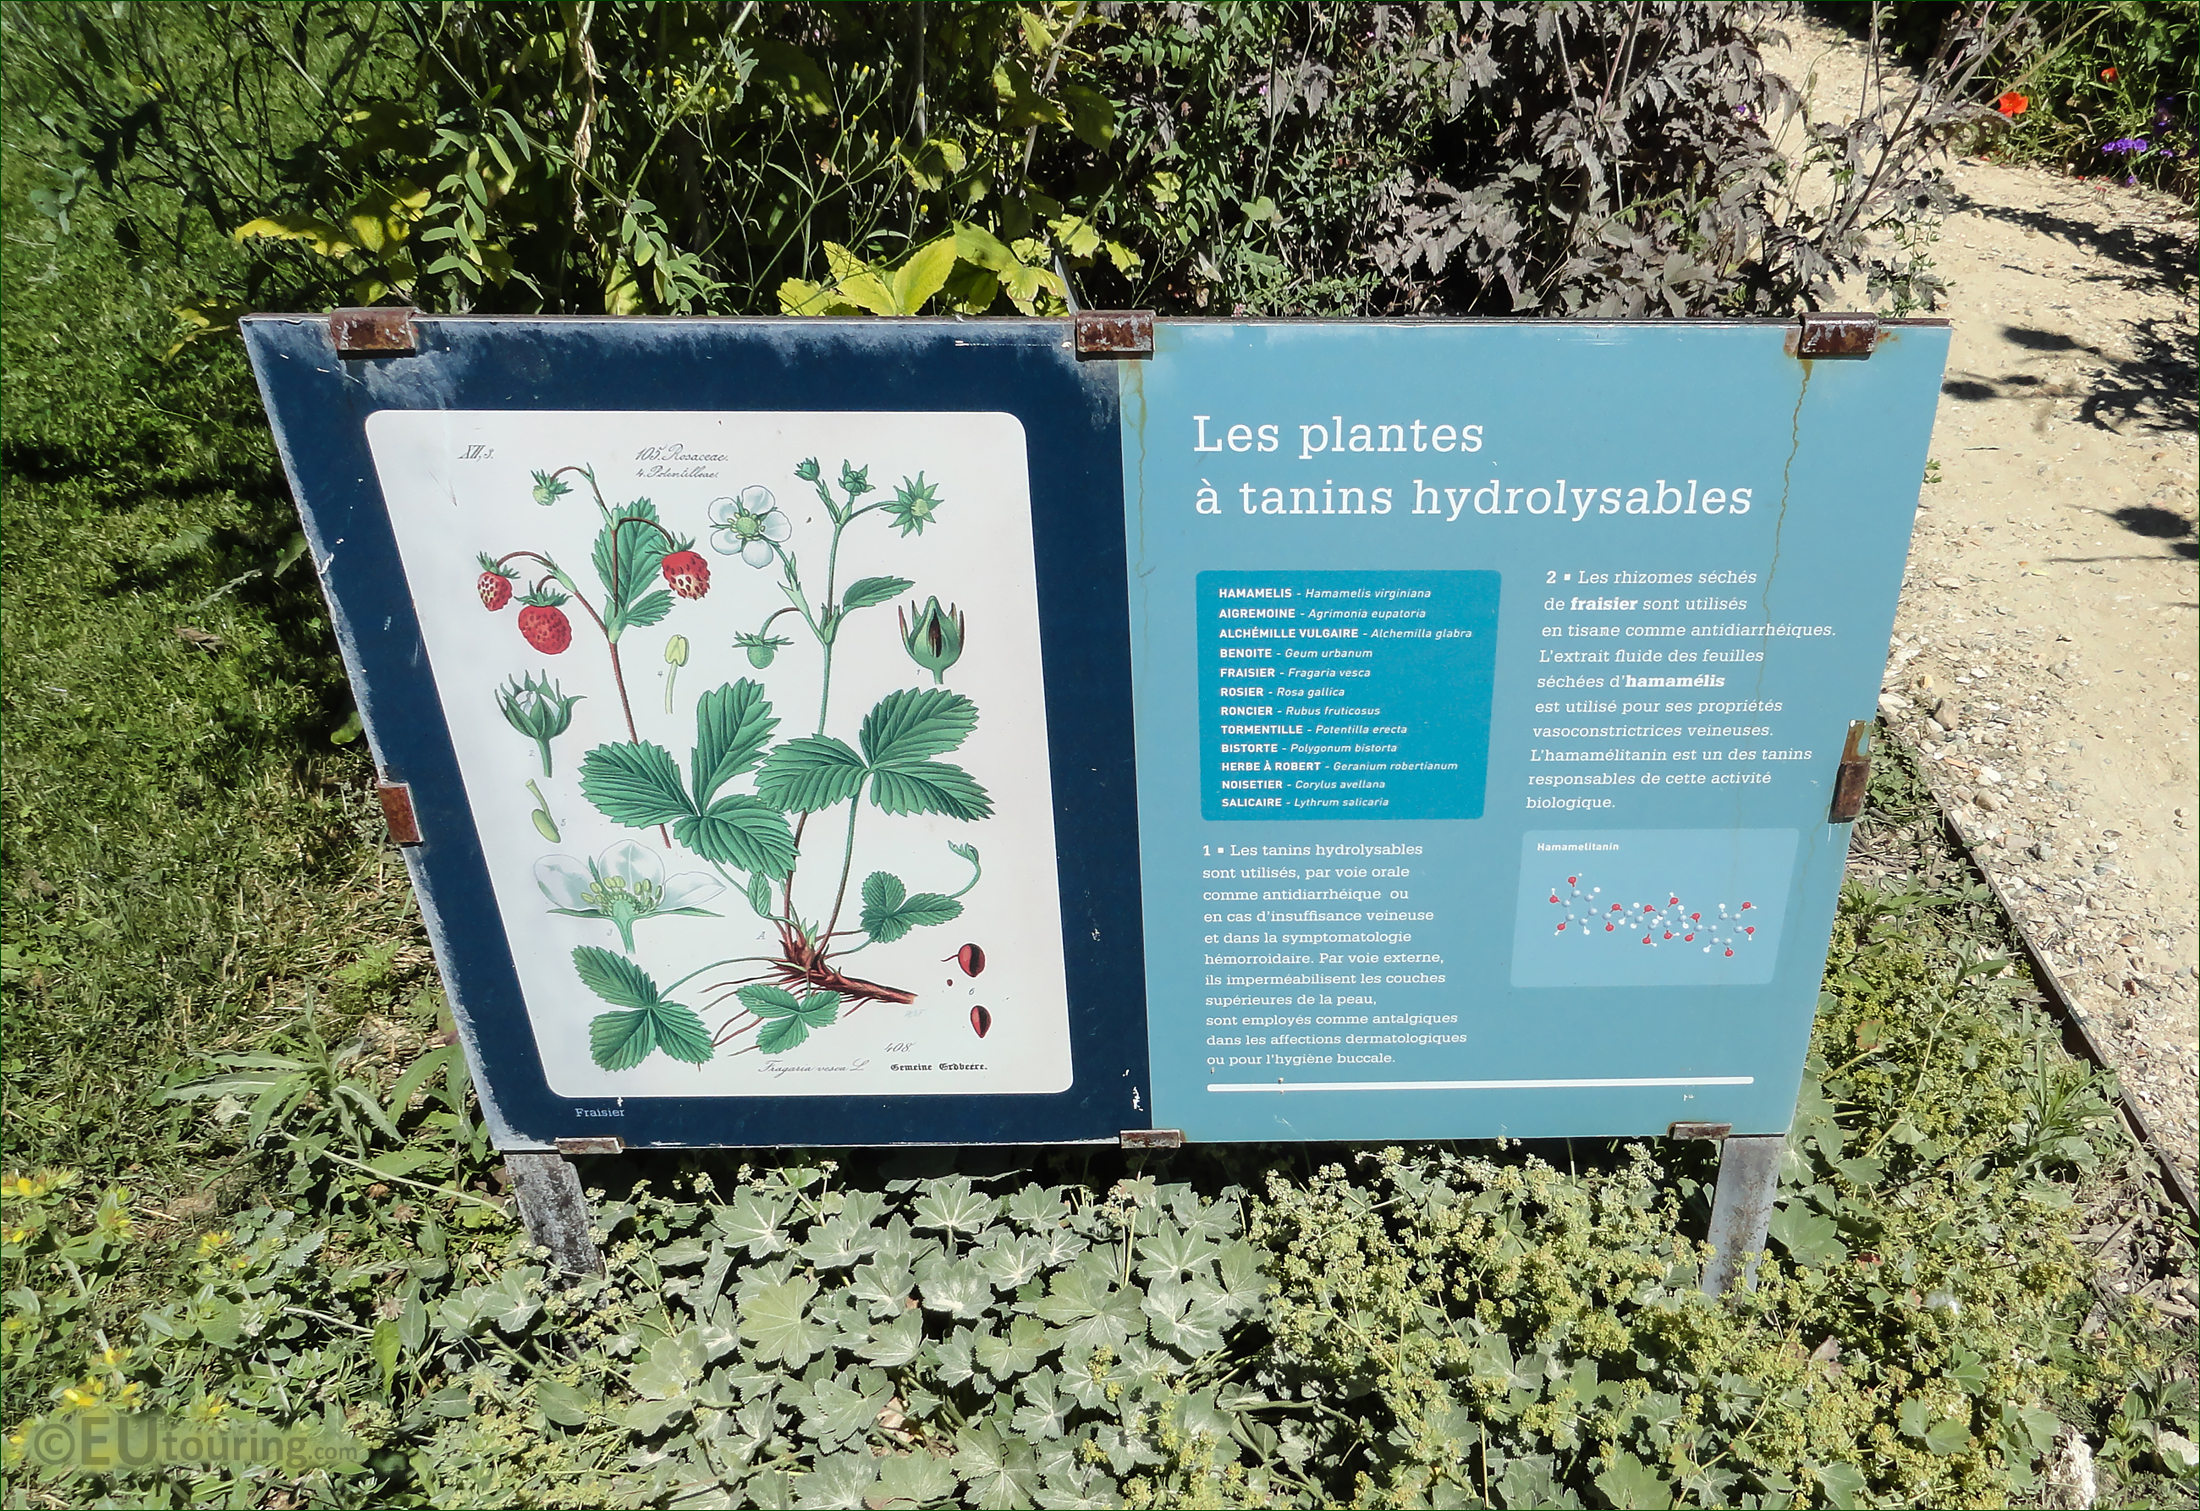 Hd photographs of jardin des plantes in paris france for Plantes jardins